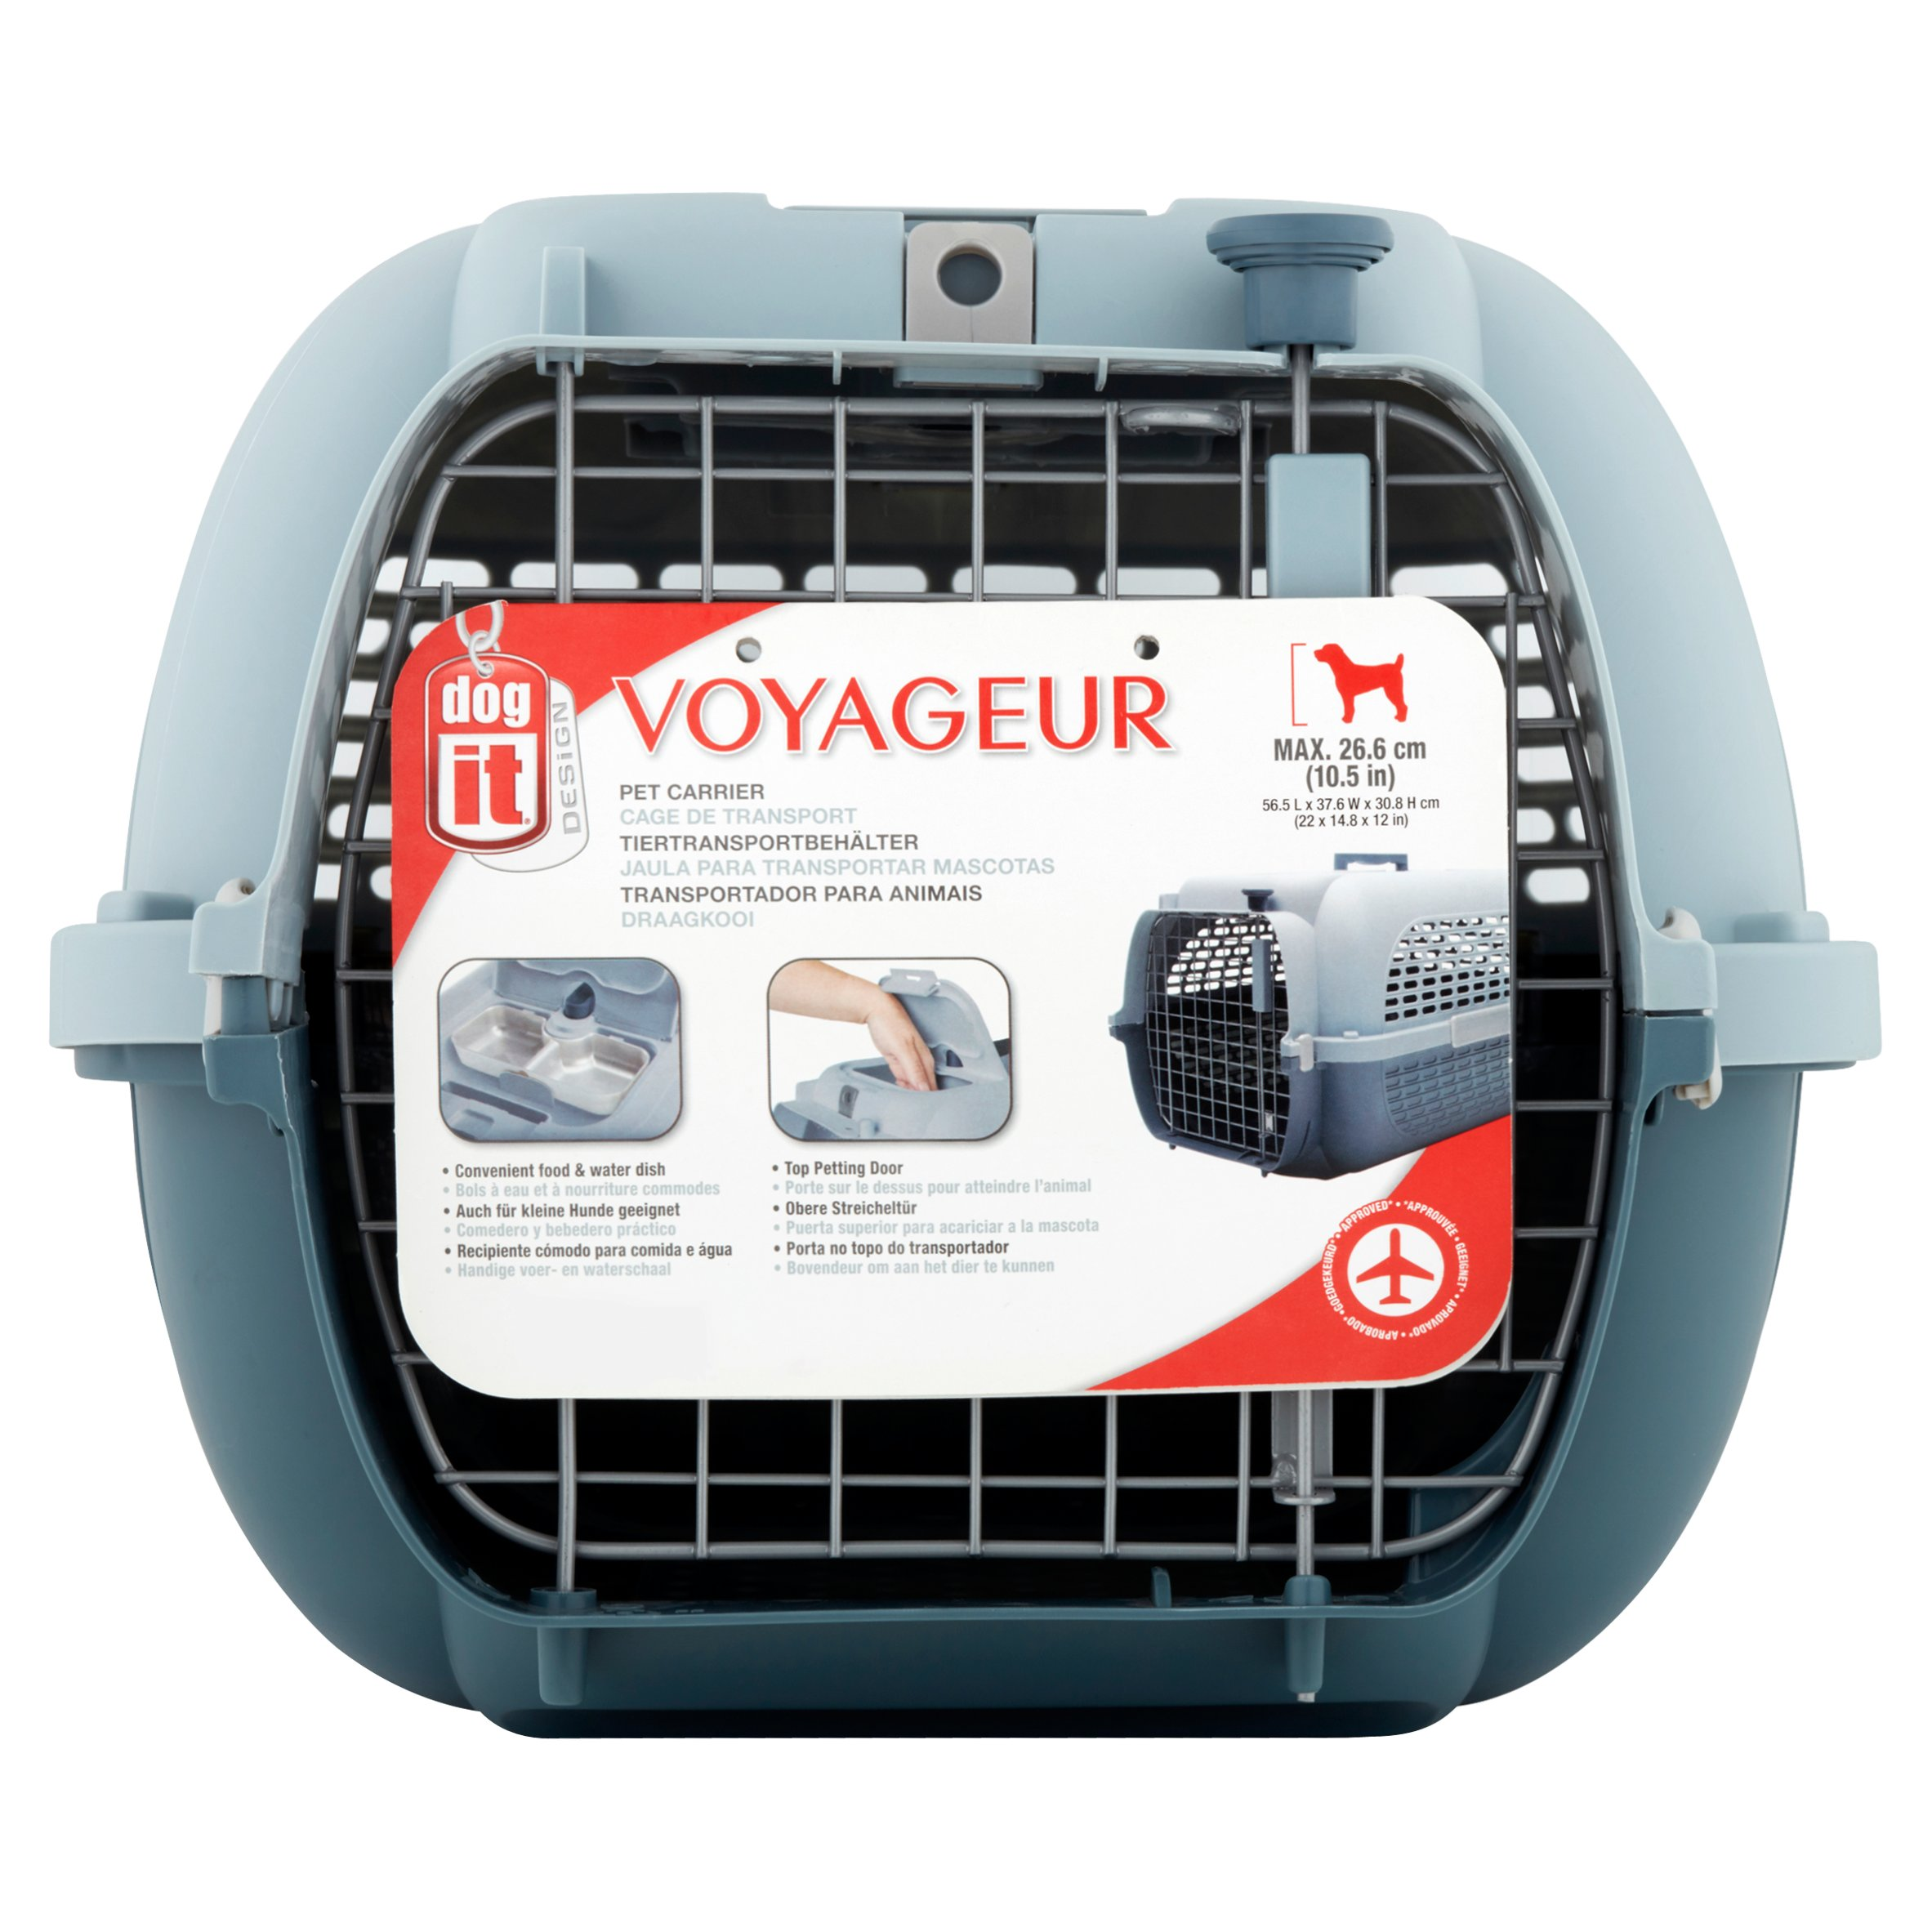 Dogit Design Voyageur Pet Carrier by Rolf C. Hagen (U.S.A.) Corp.